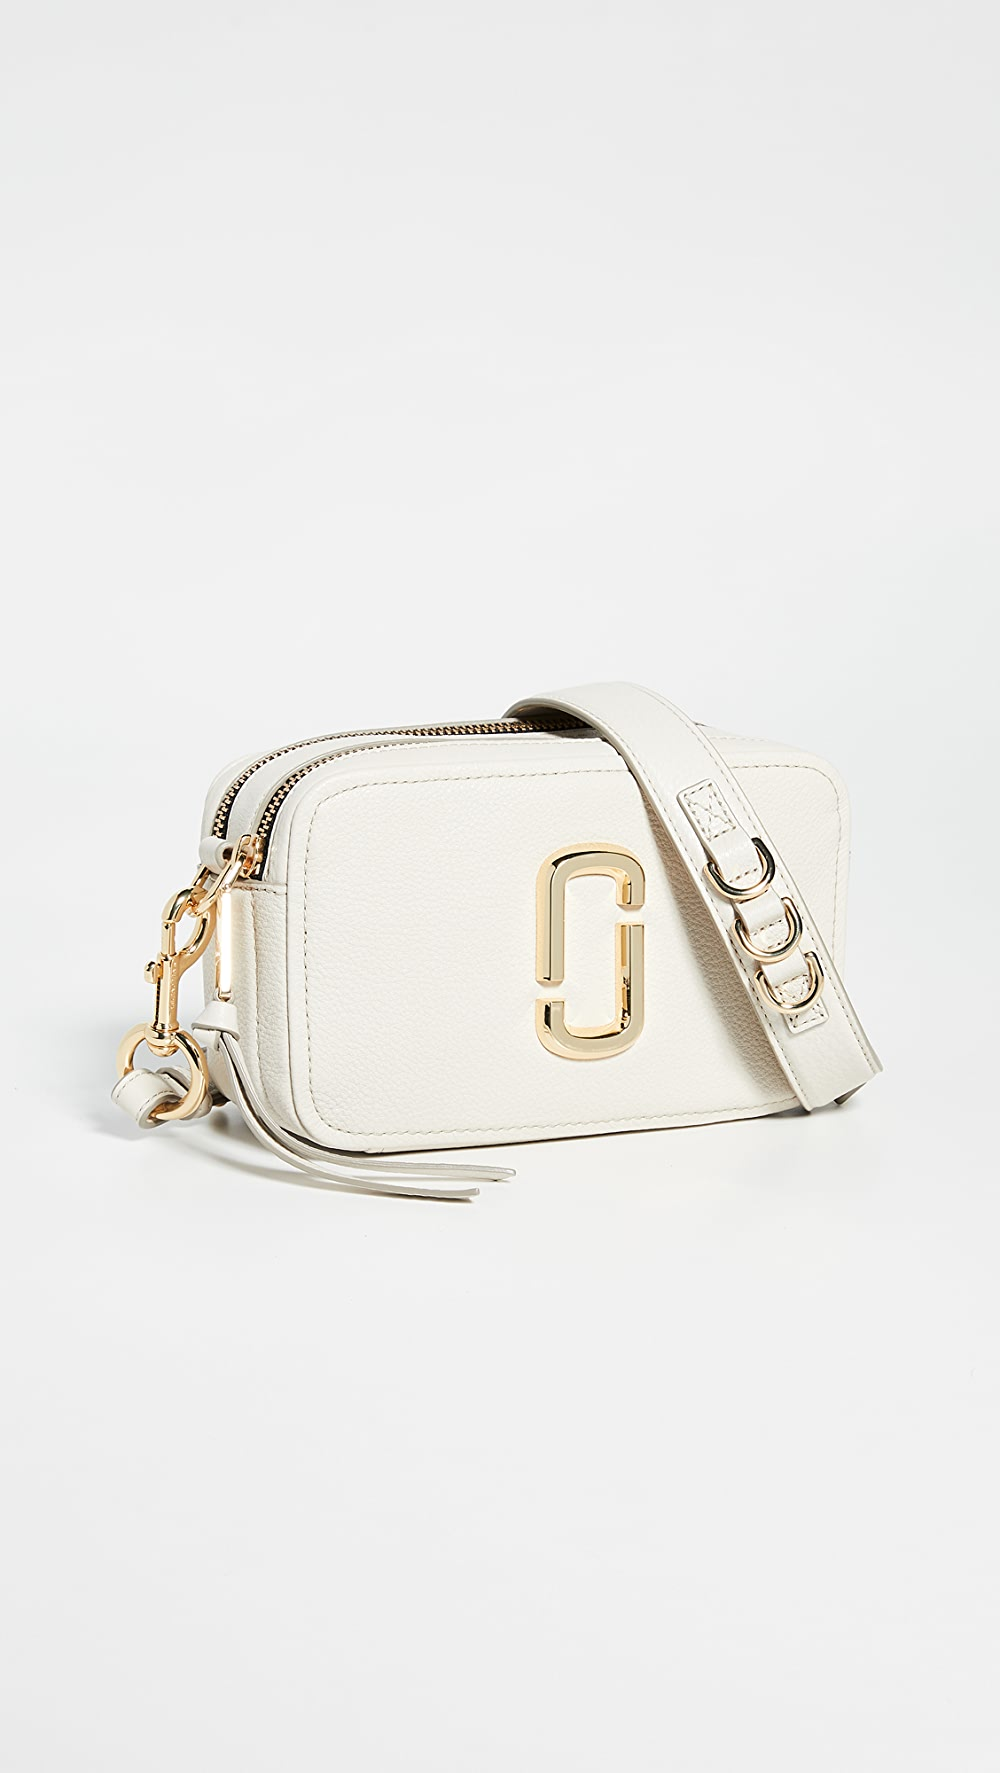 Reasonable The Marc Jacobs - The Softshot 21 Bag At All Costs